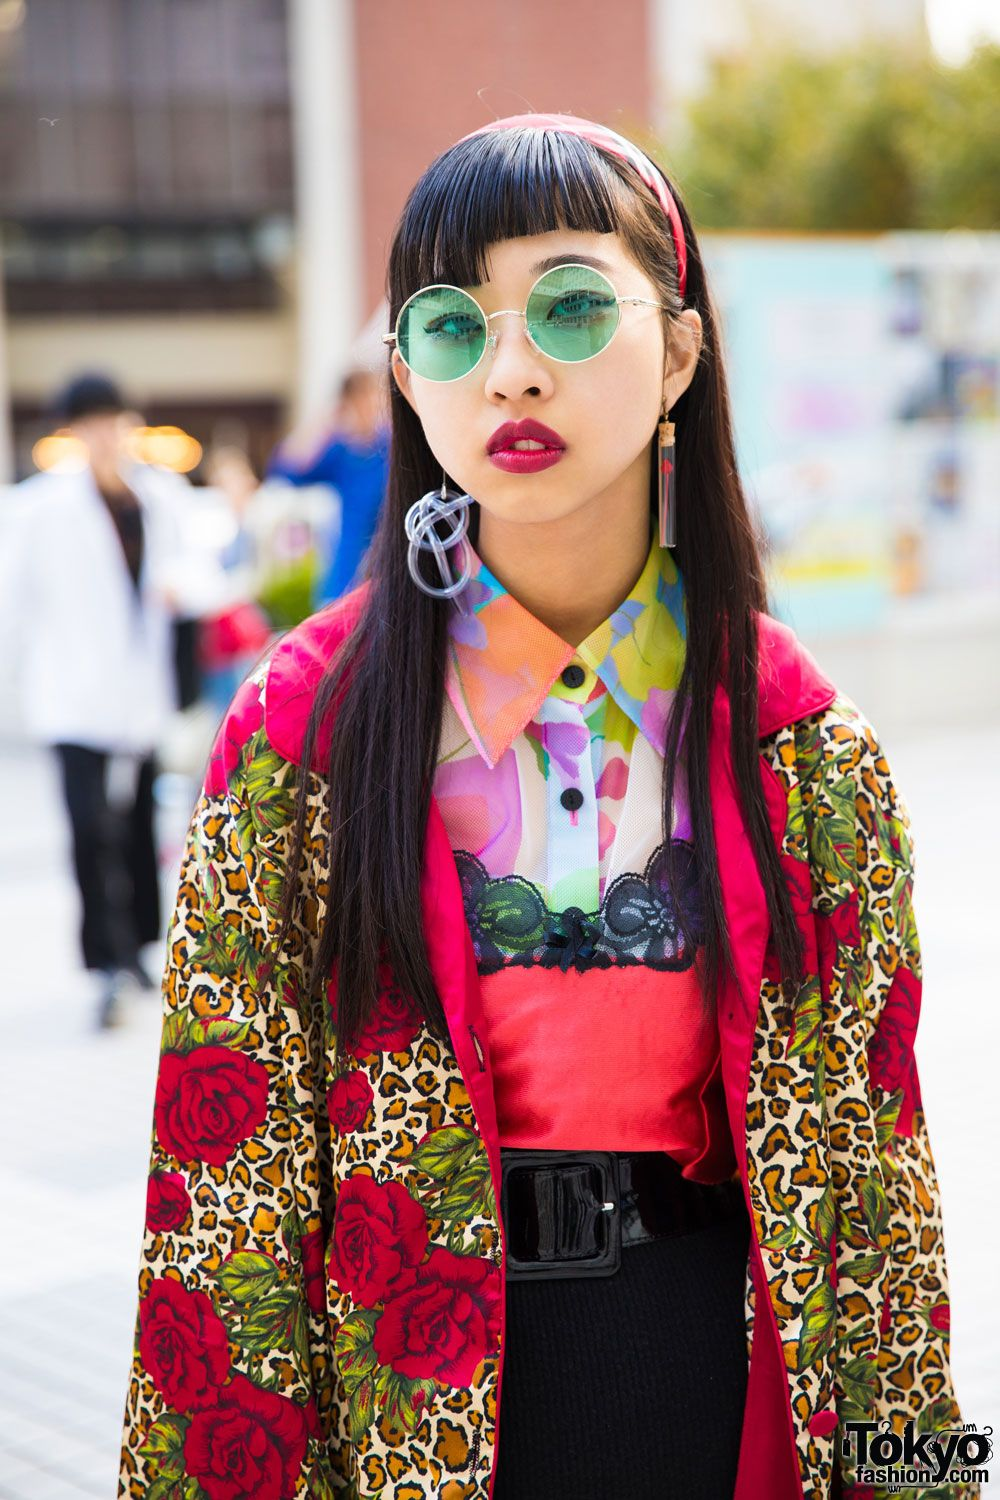 Japanese Fashion Student In Vintage Mixed Prints Street Style W Gitar C 370 Myuno Bubbles Tokyo Vivienne Westwood